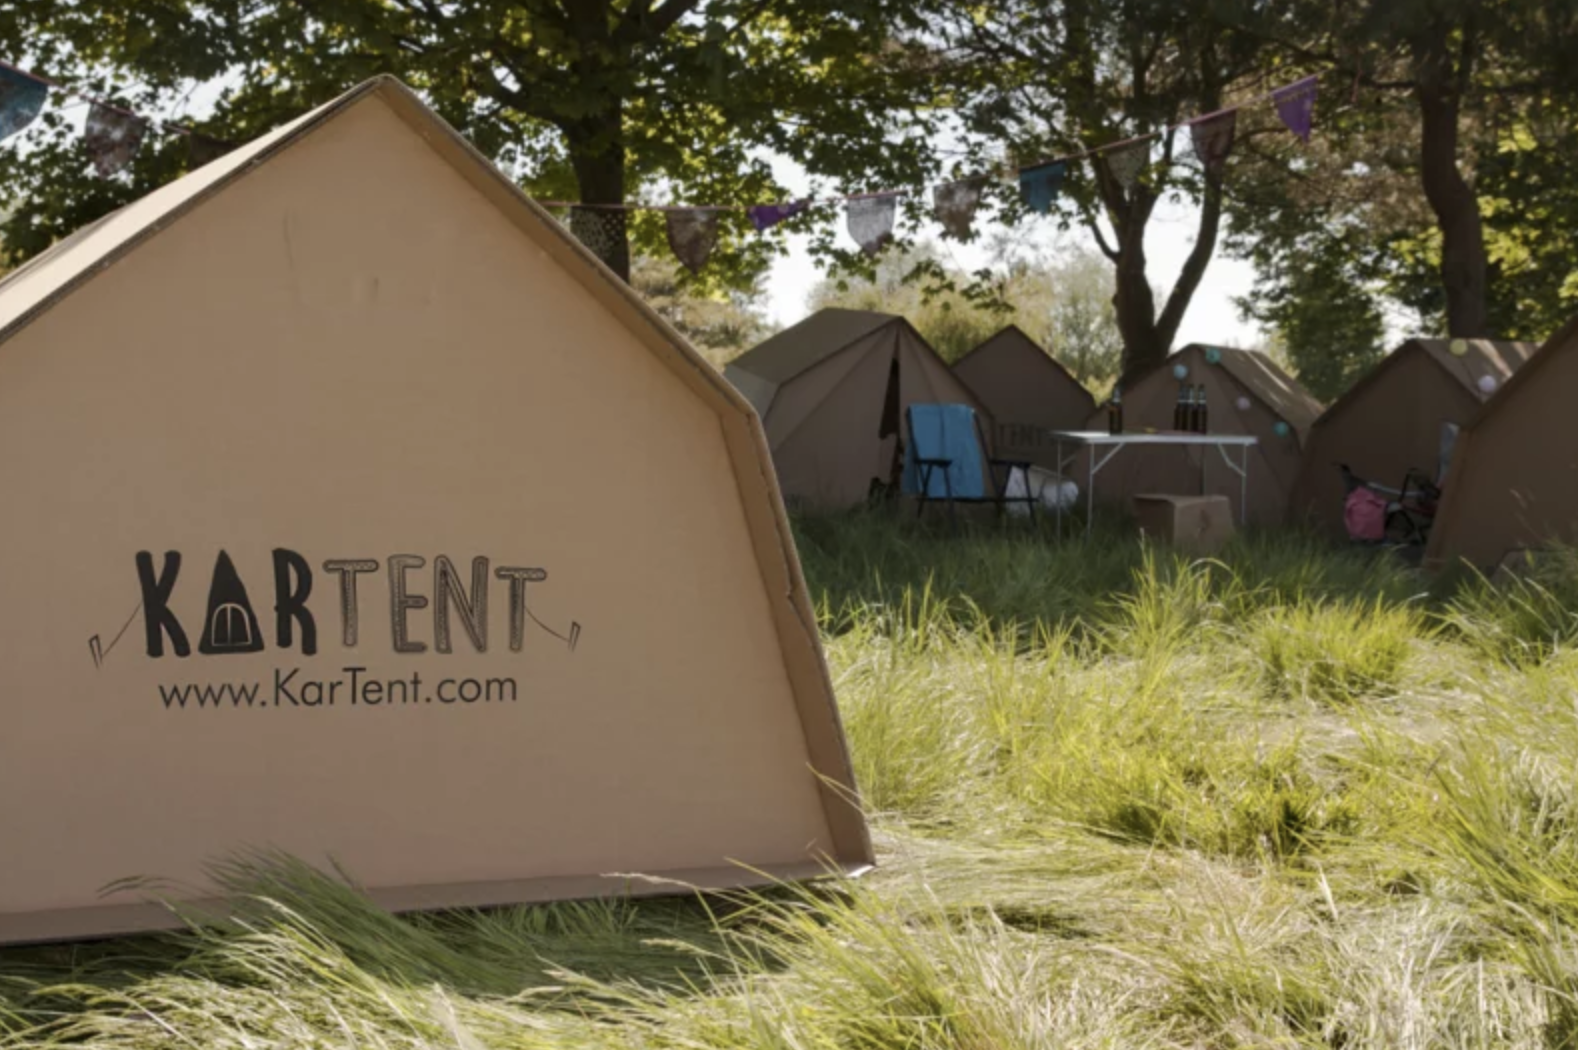 Plastic free tent: This recyclable tent